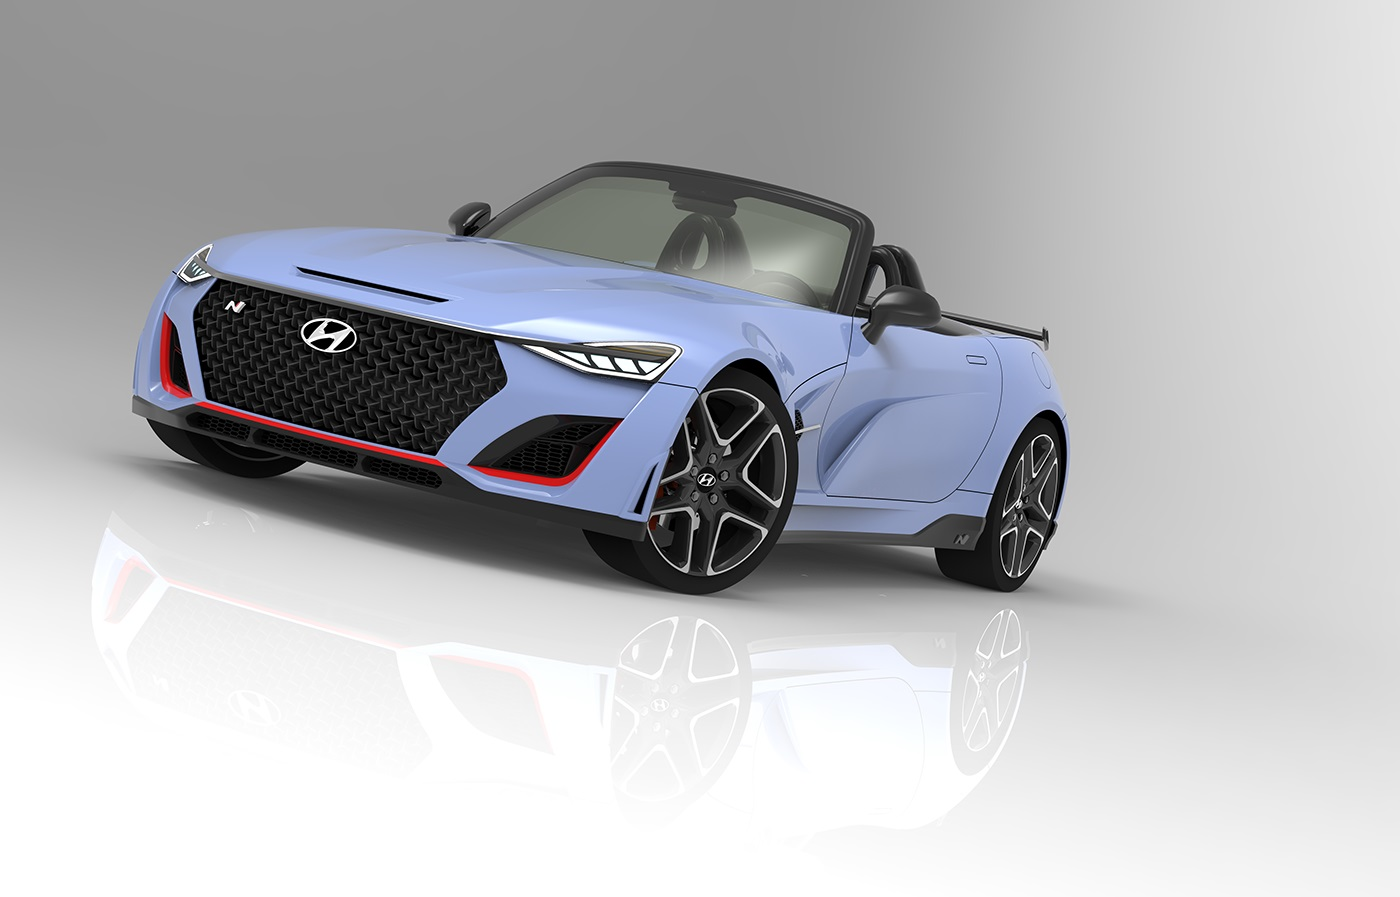 Hyundai N Roadster renderings (23)